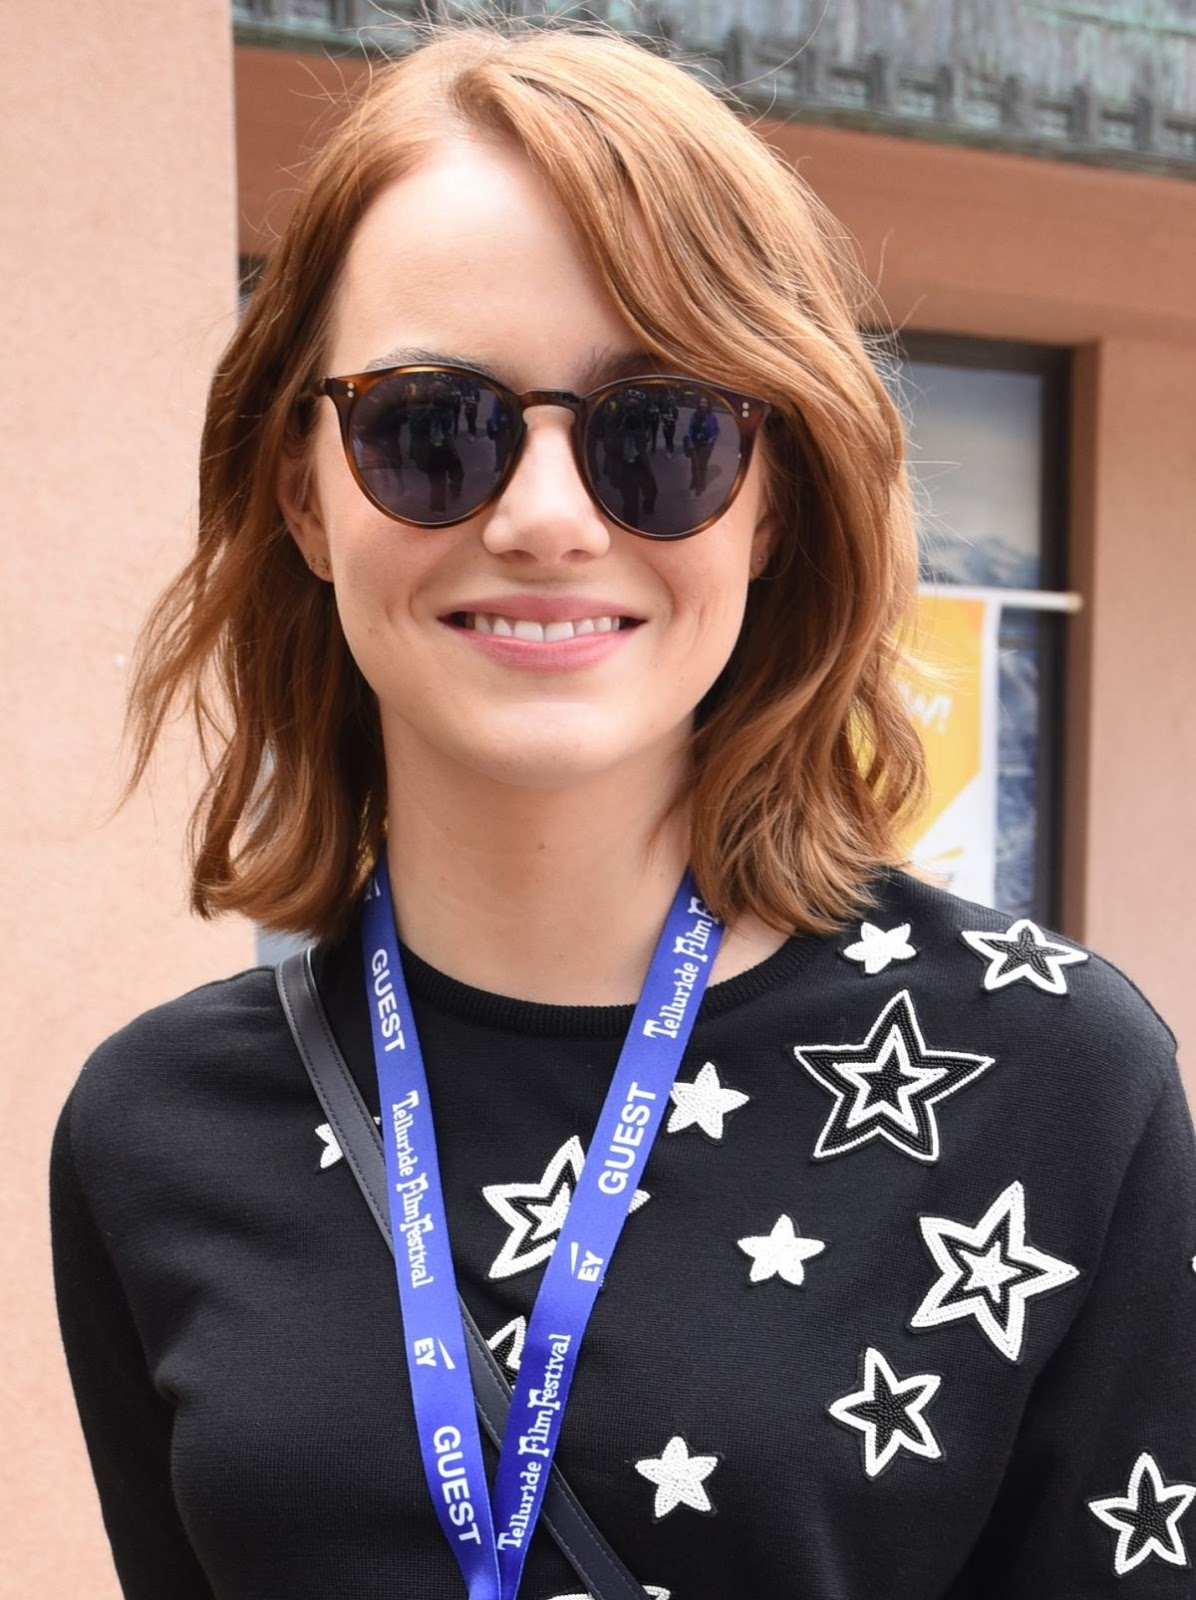 HQ Photos of Emma Stone At Telluride Film Festival 2016 In Telluride